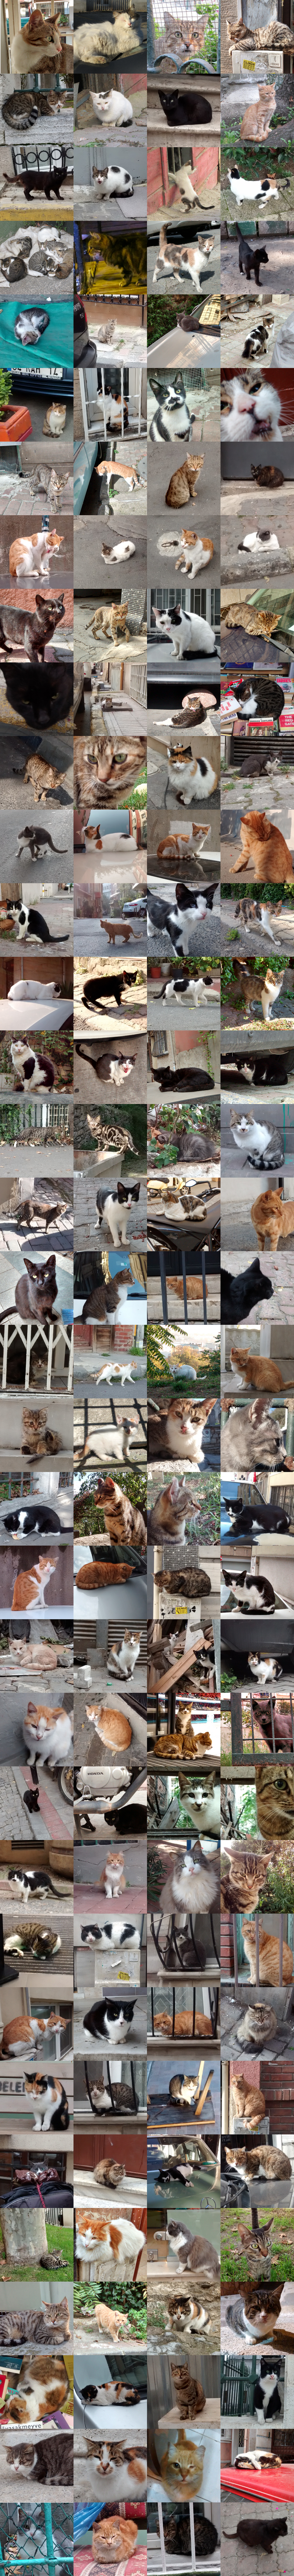 street cats of istanbul